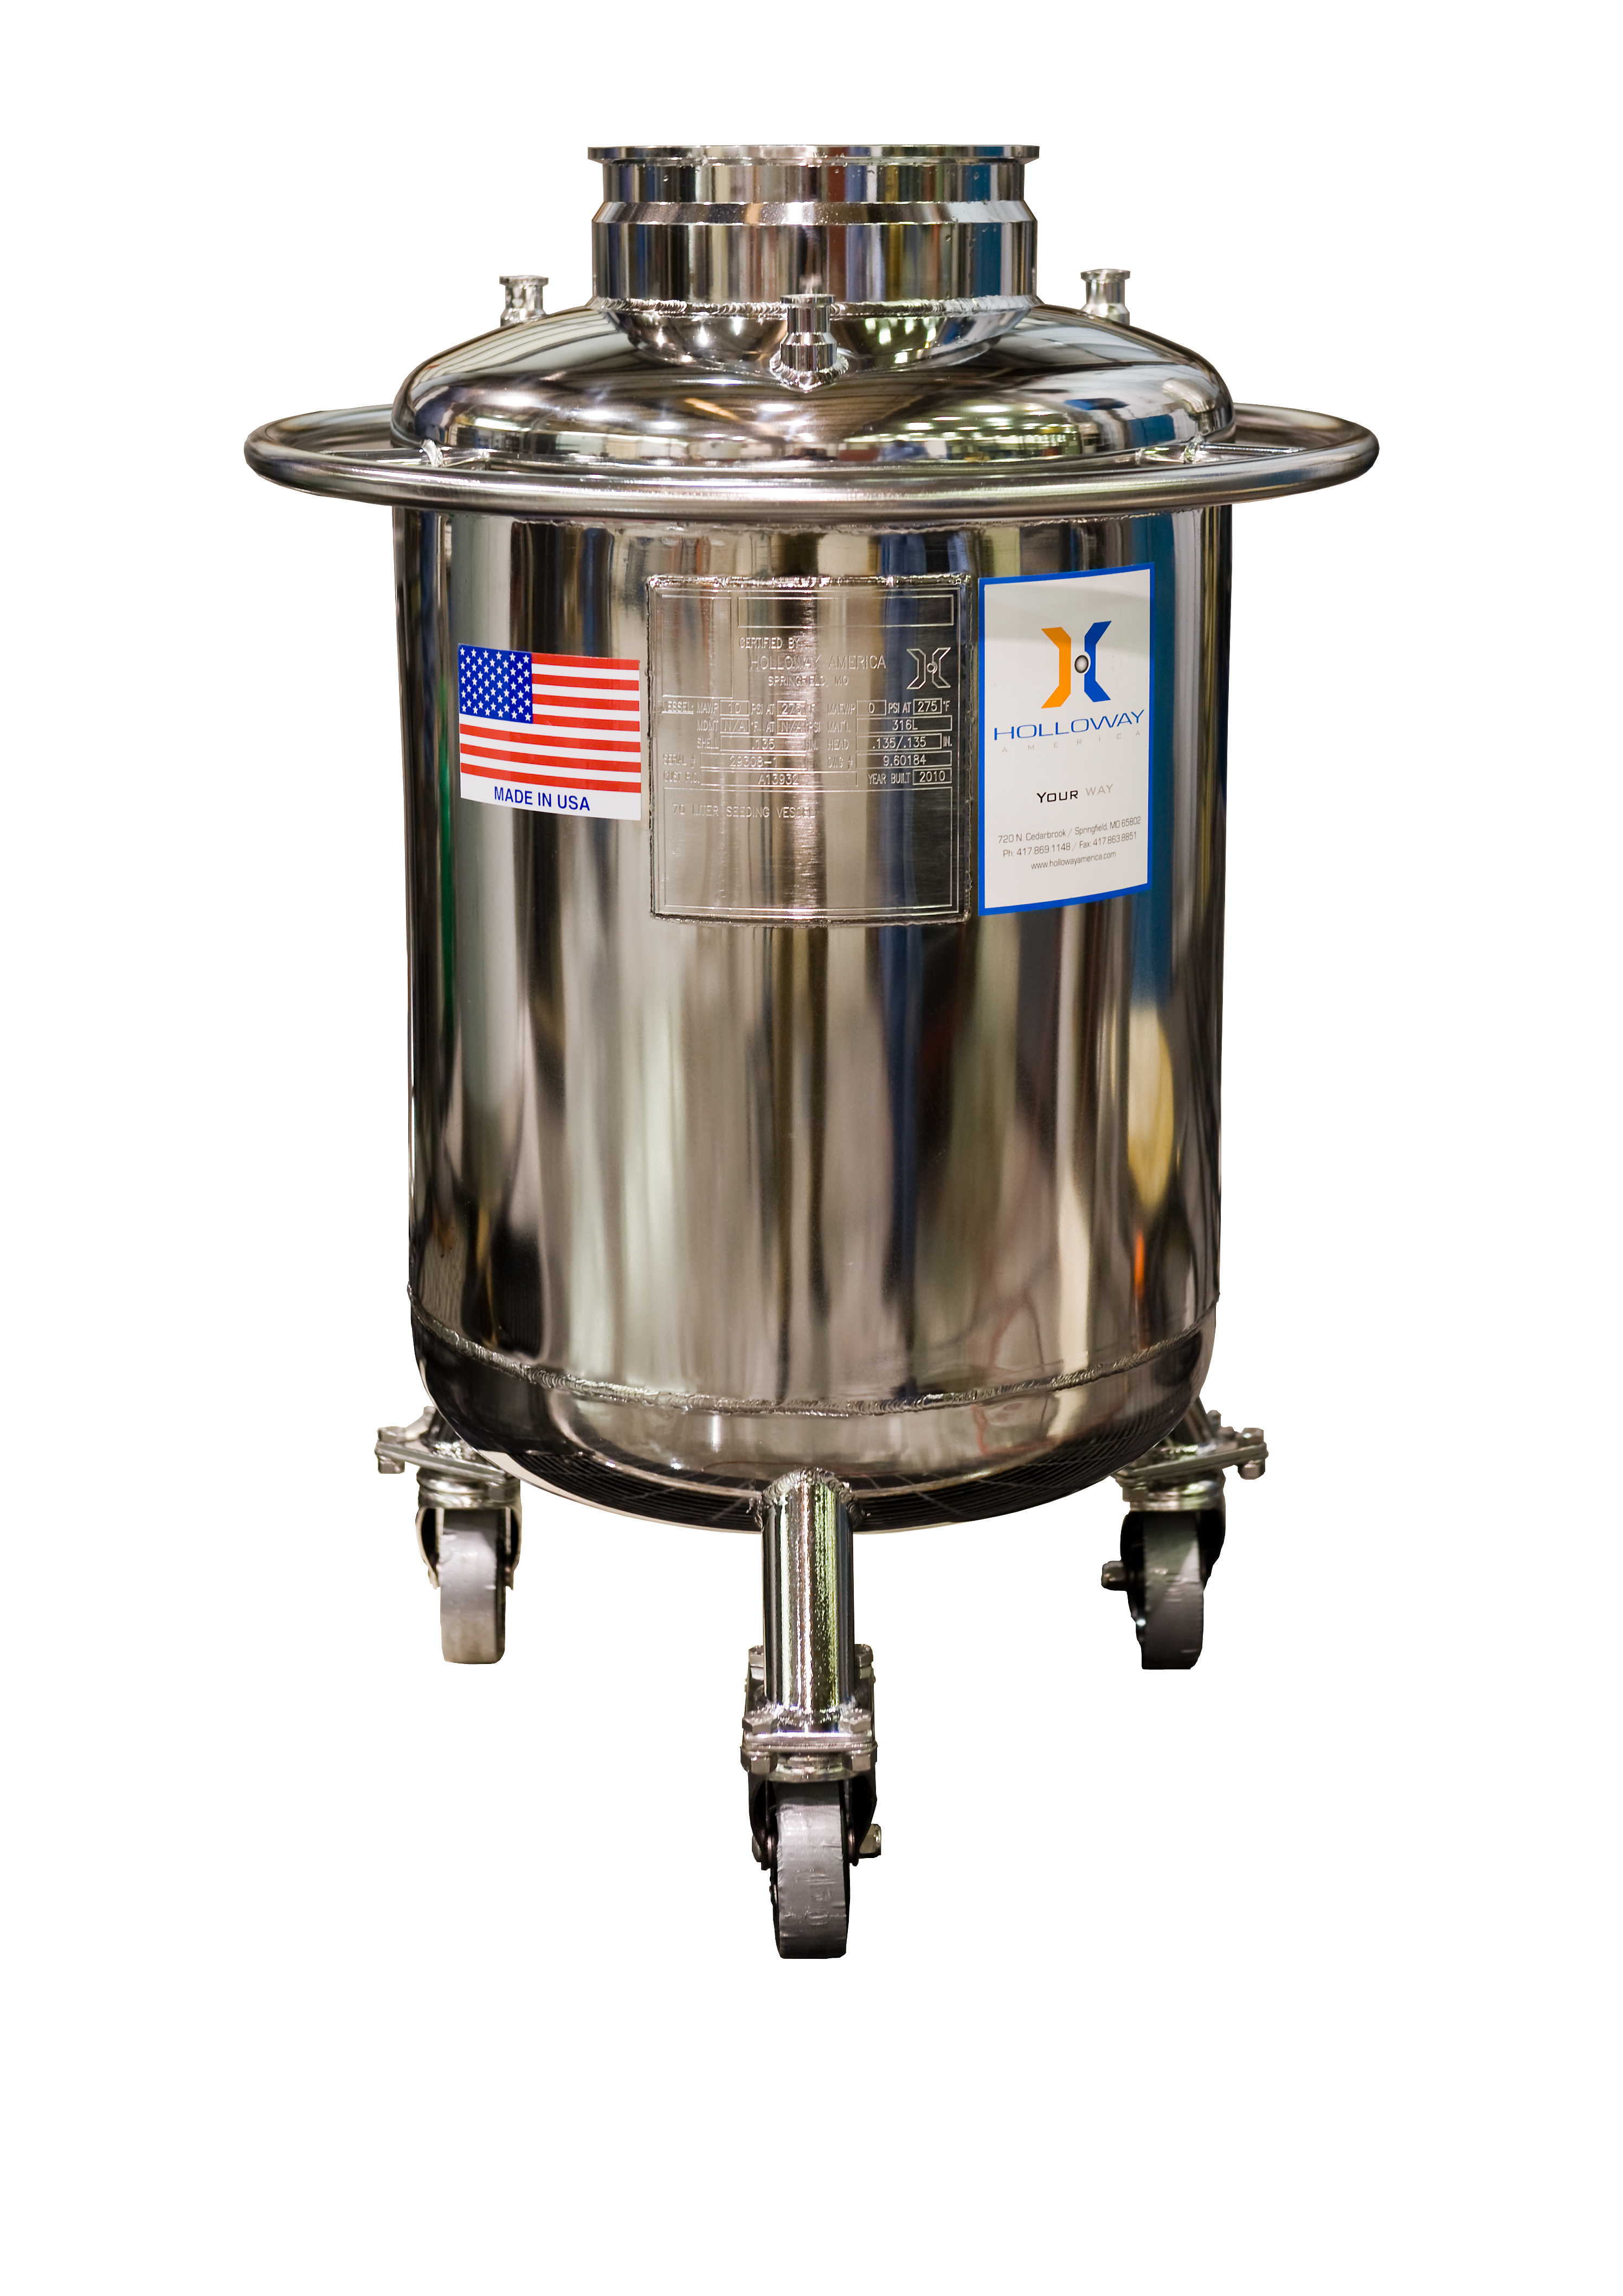 ASME pressure vessels are available as portable tanks from HOLLOWAY.